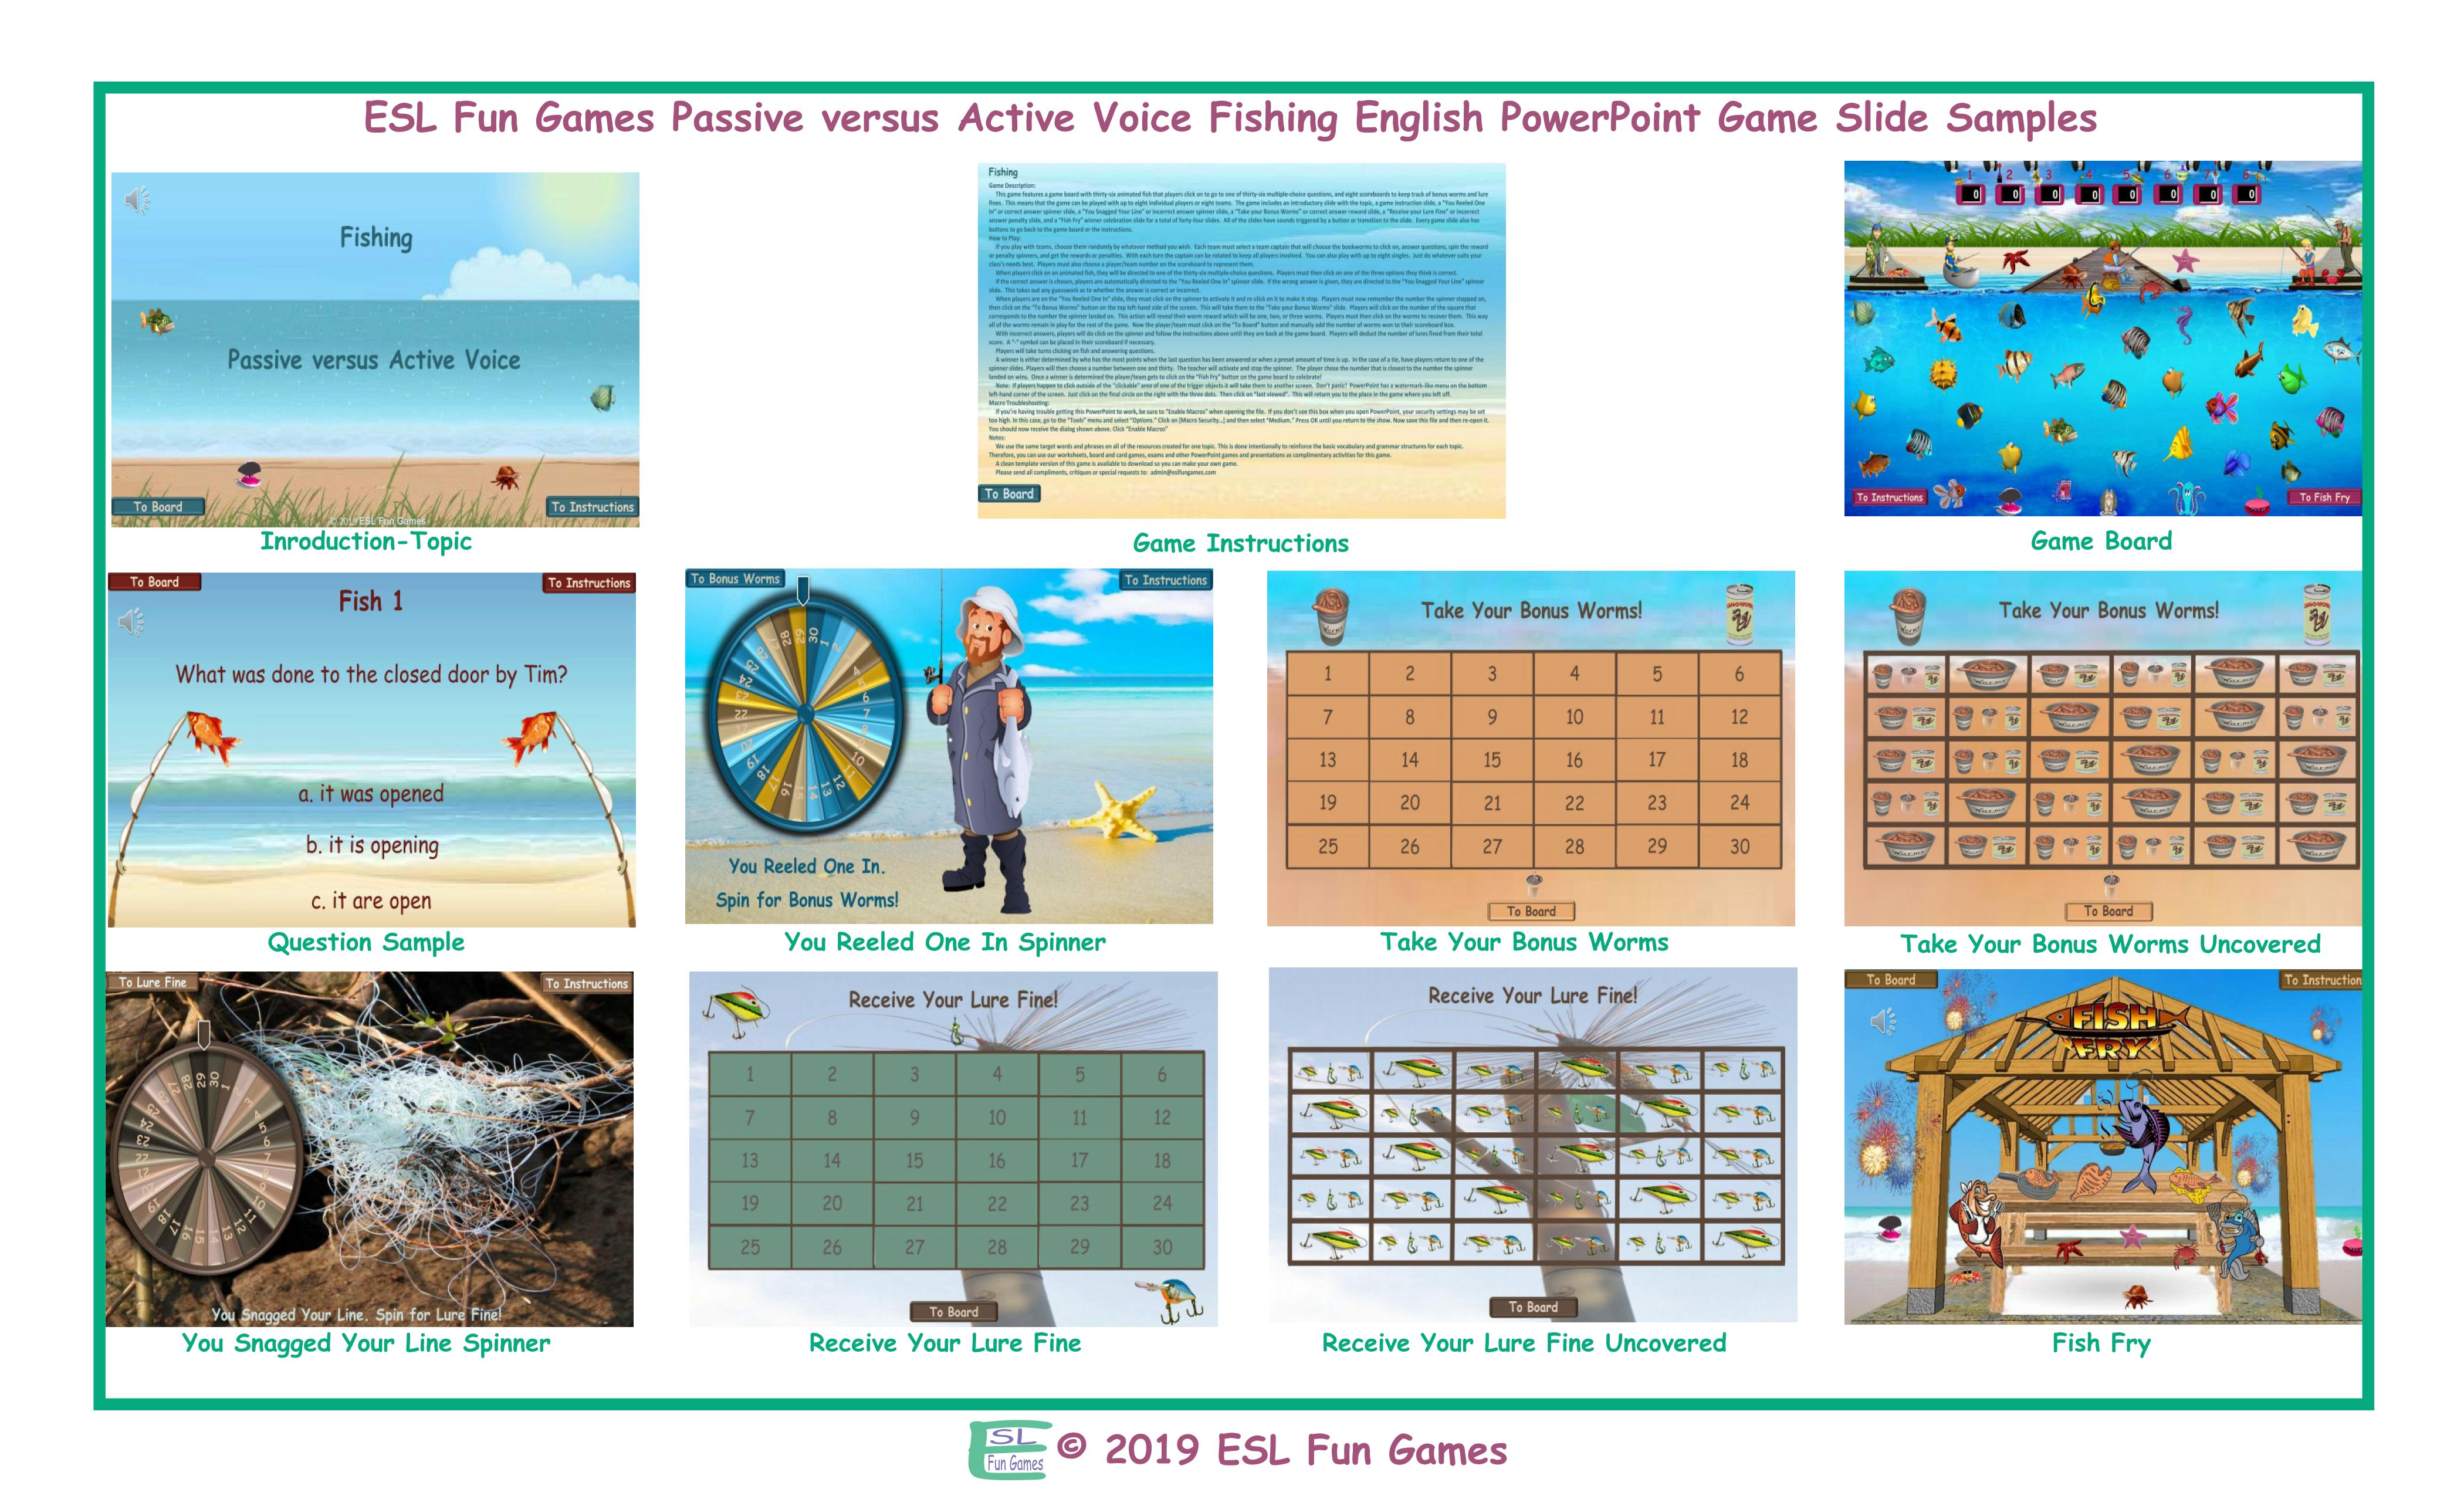 Passive versus Active Voice Fishing Interactive English PowerPoint Game